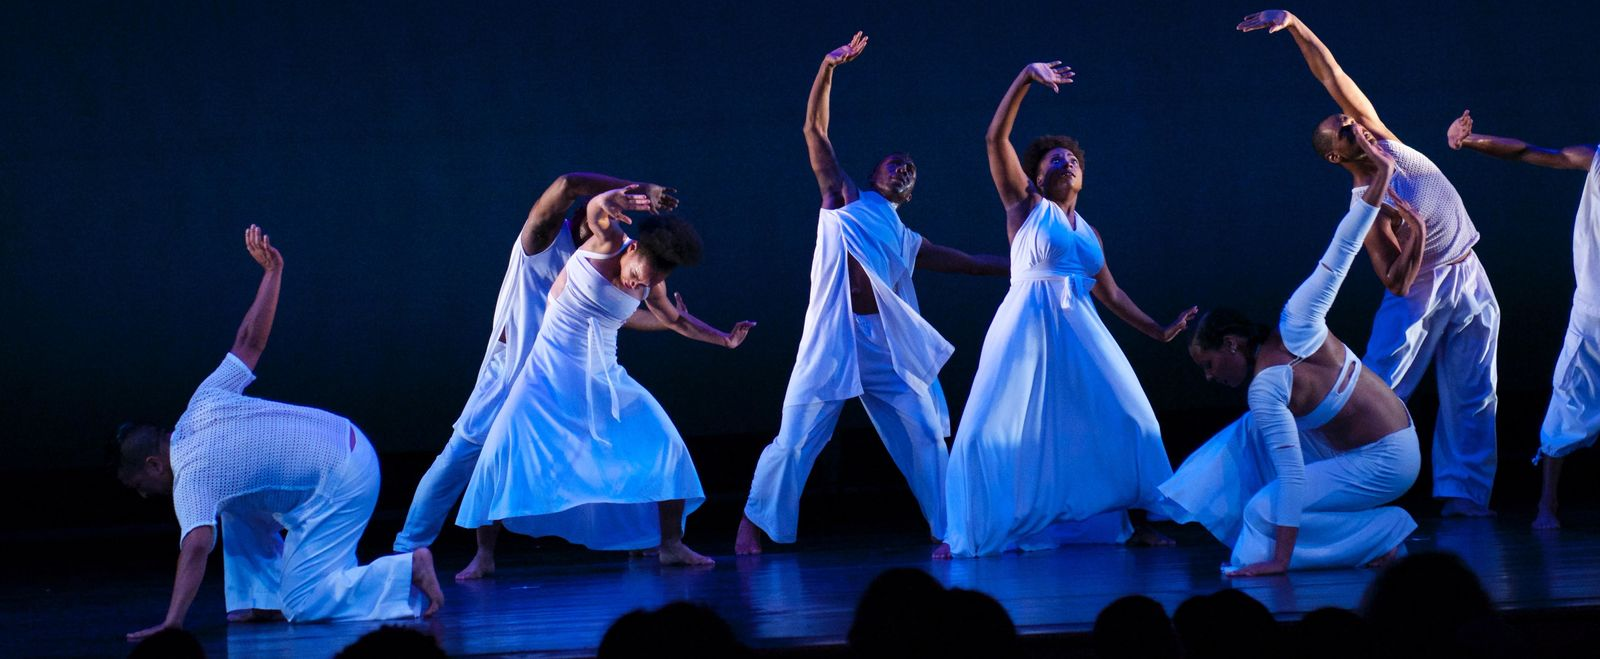 Ronald K. Brown/EVIDENCE, A Dance Company, by Sally Cohn courtesy of The Yard